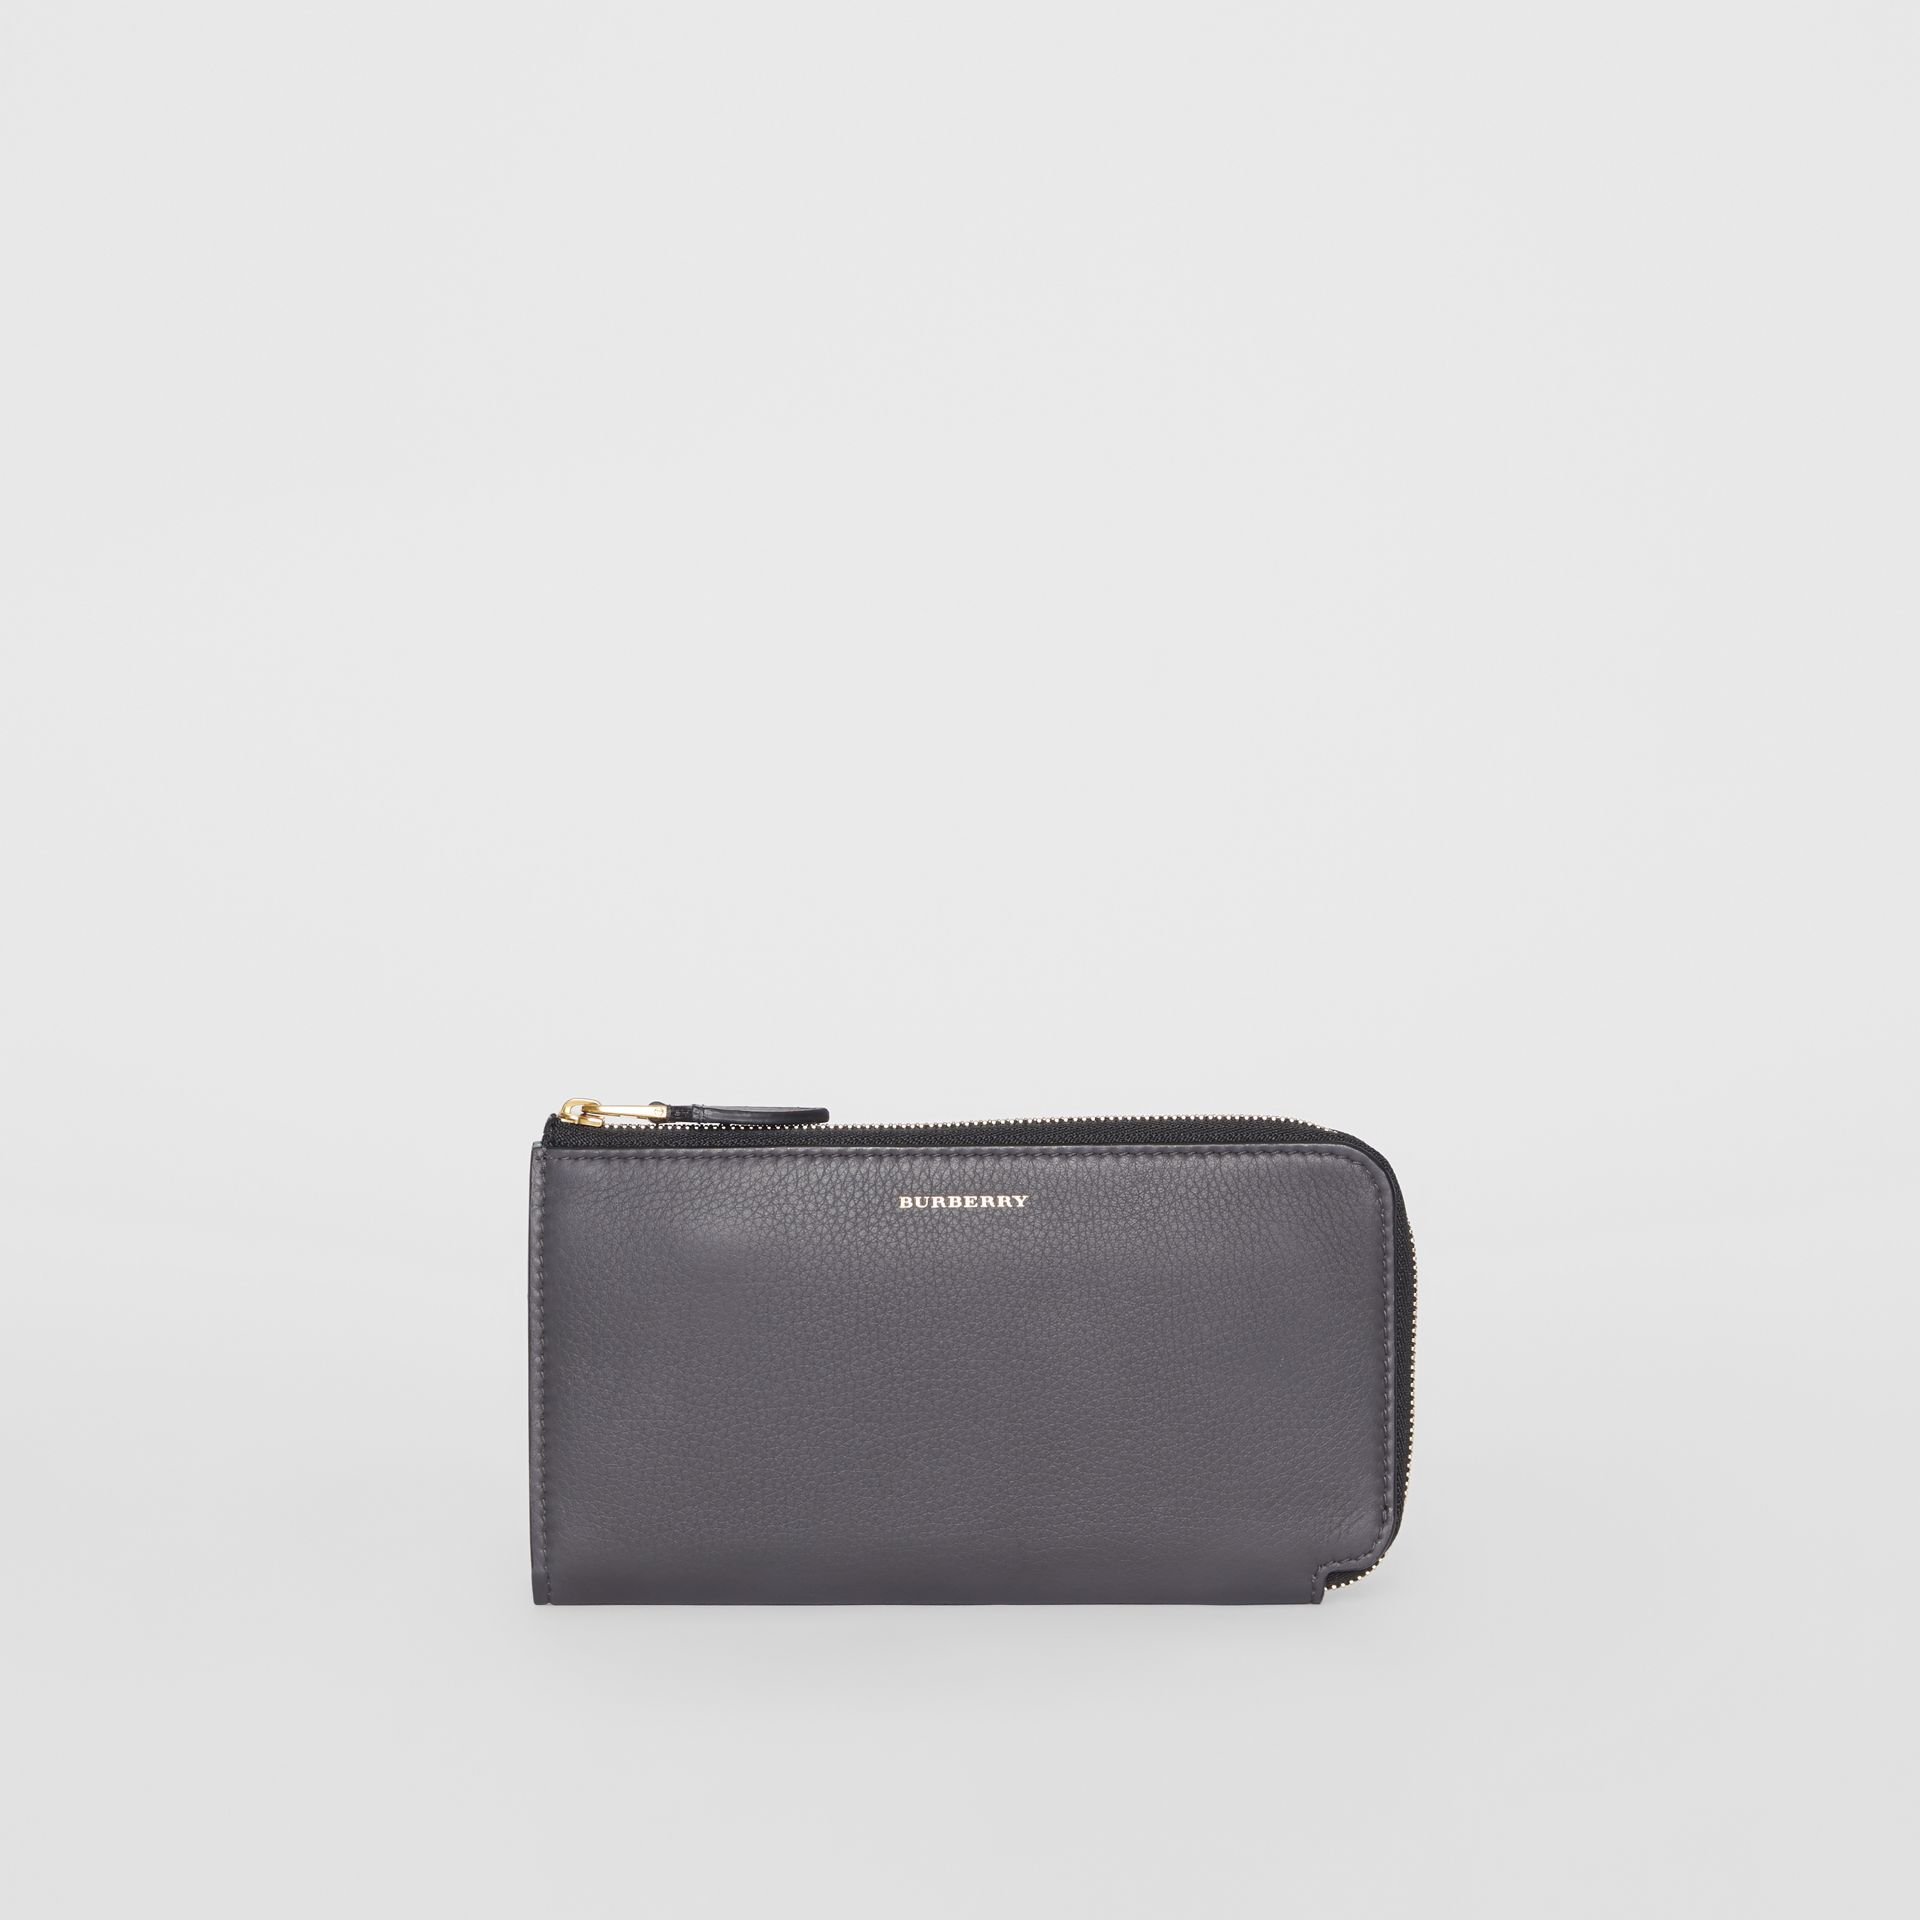 Two-tone Leather Ziparound Wallet and Coin Case in Charcoal Grey - Women | Burberry United Kingdom - gallery image 2